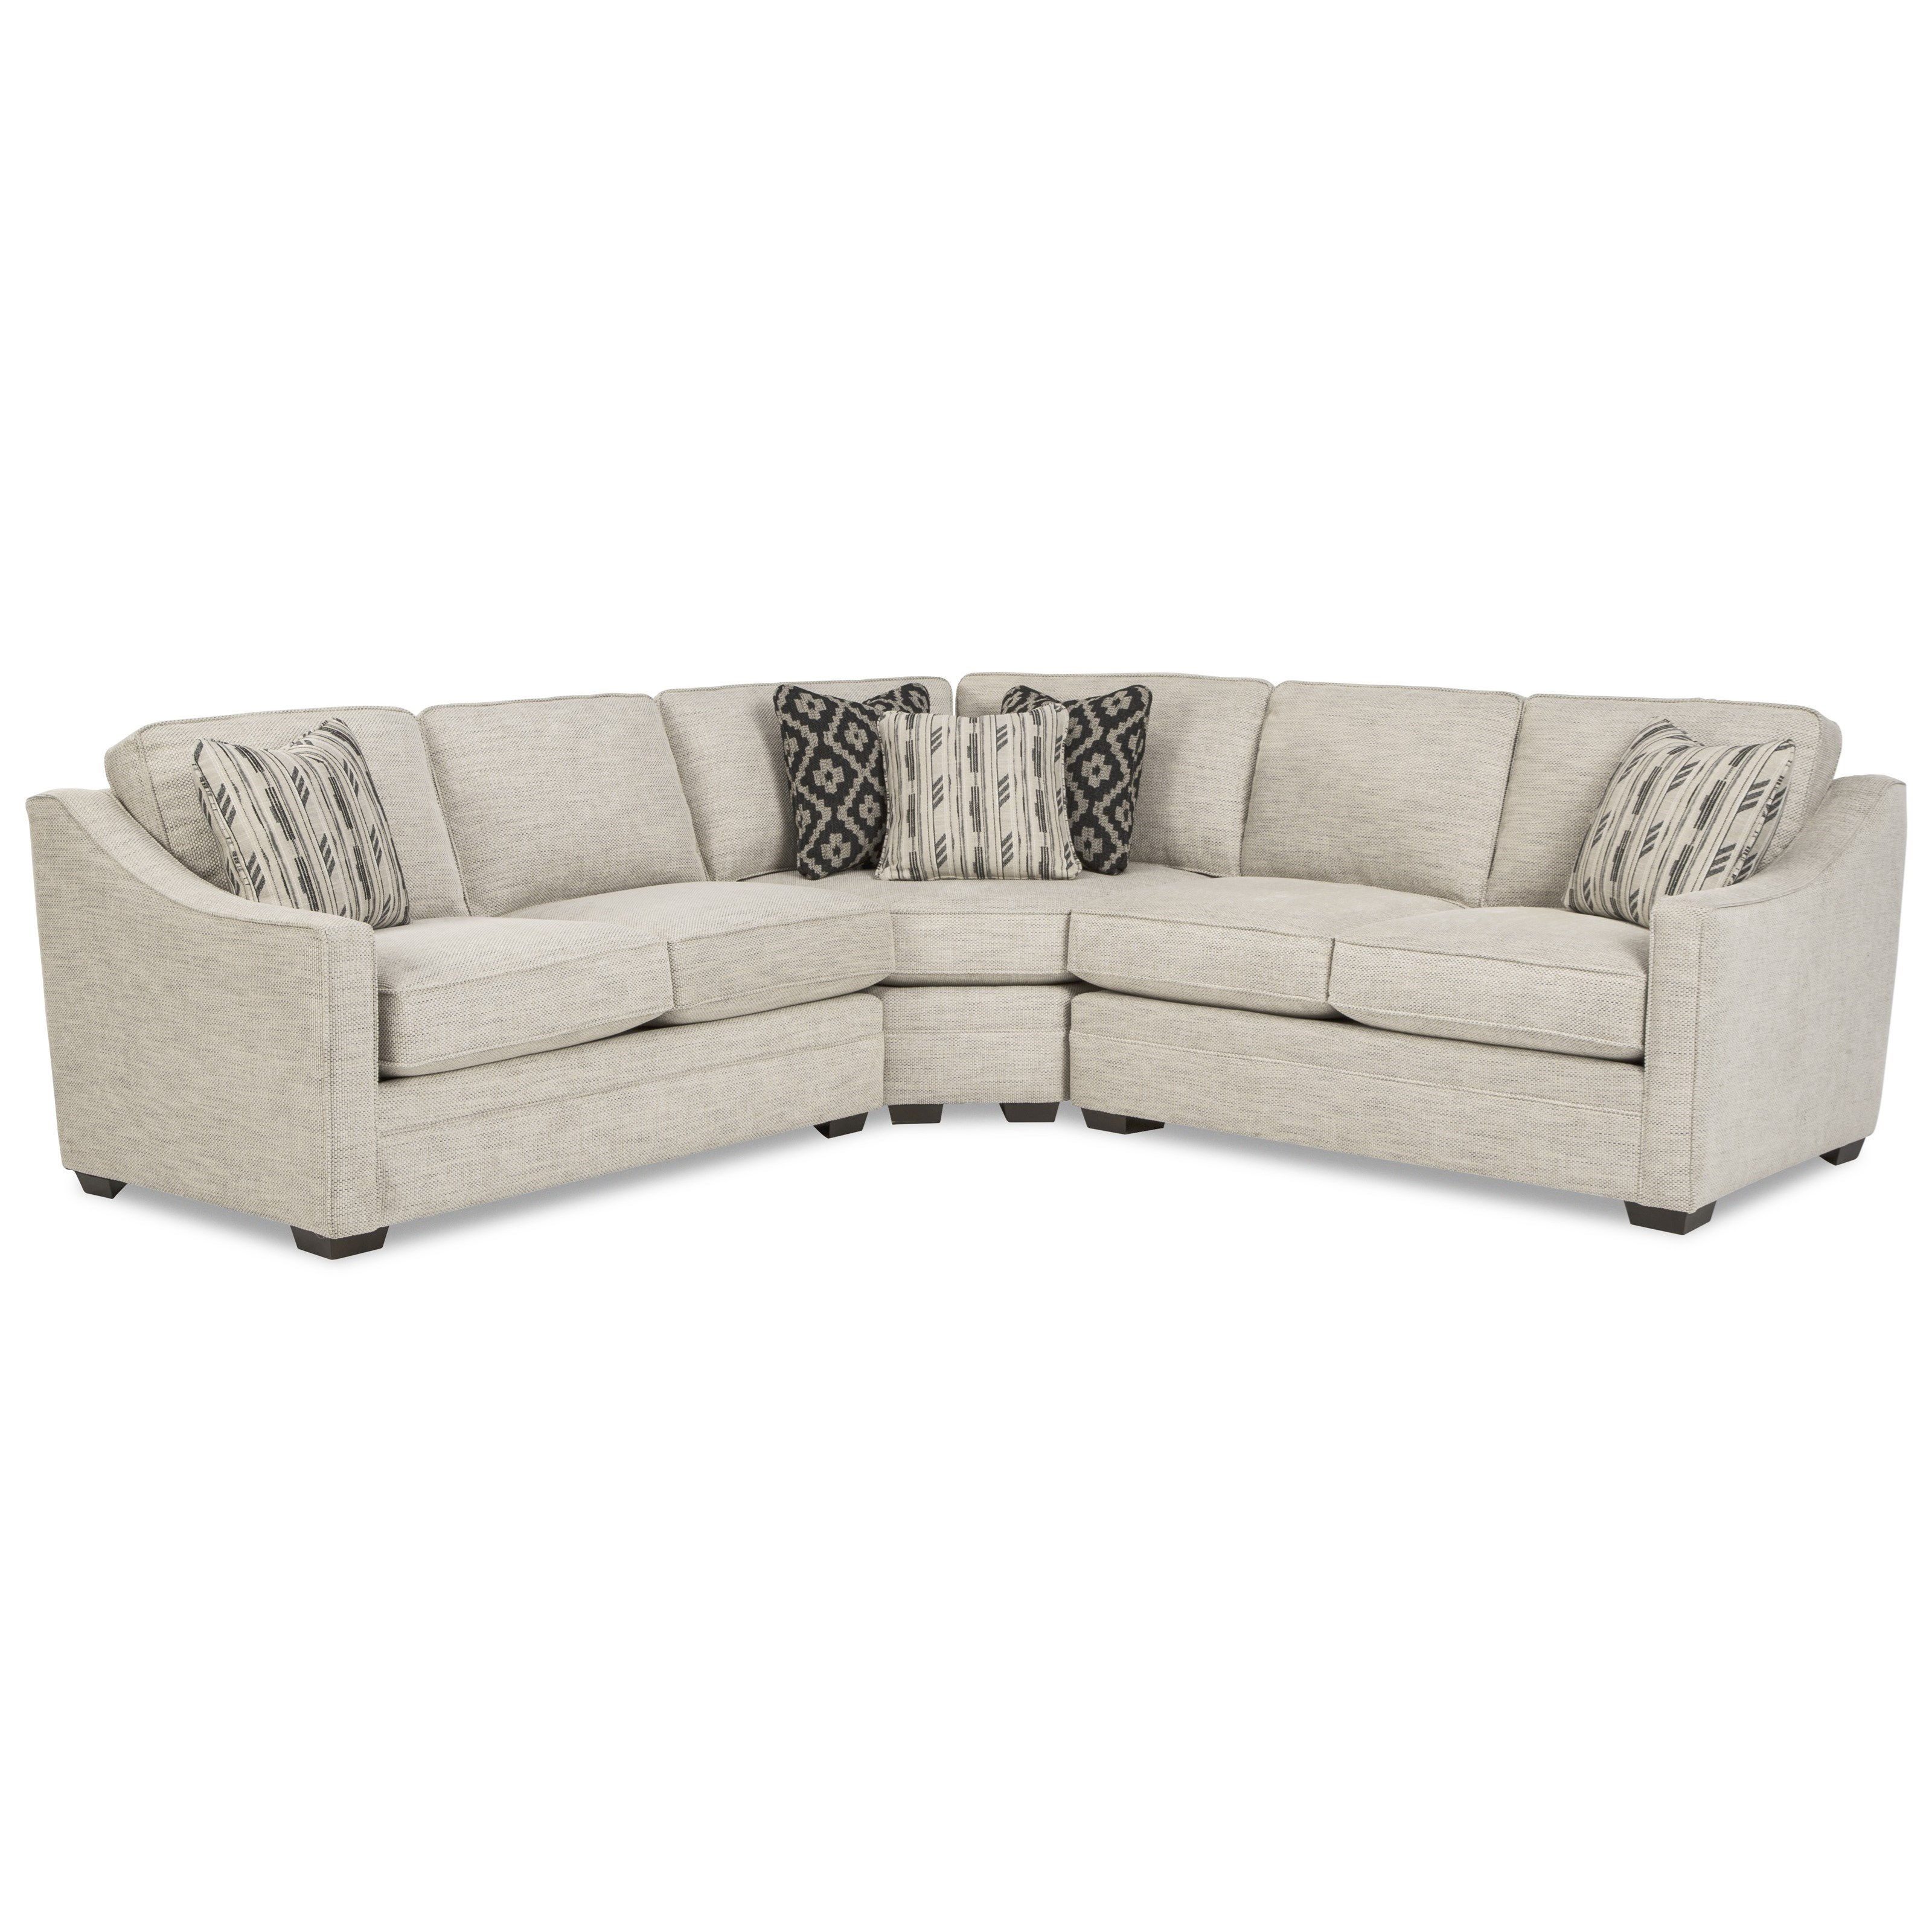 F9 Custom Collection Customizable 3-Piece Sectional by Craftmaster at Stoney Creek Furniture